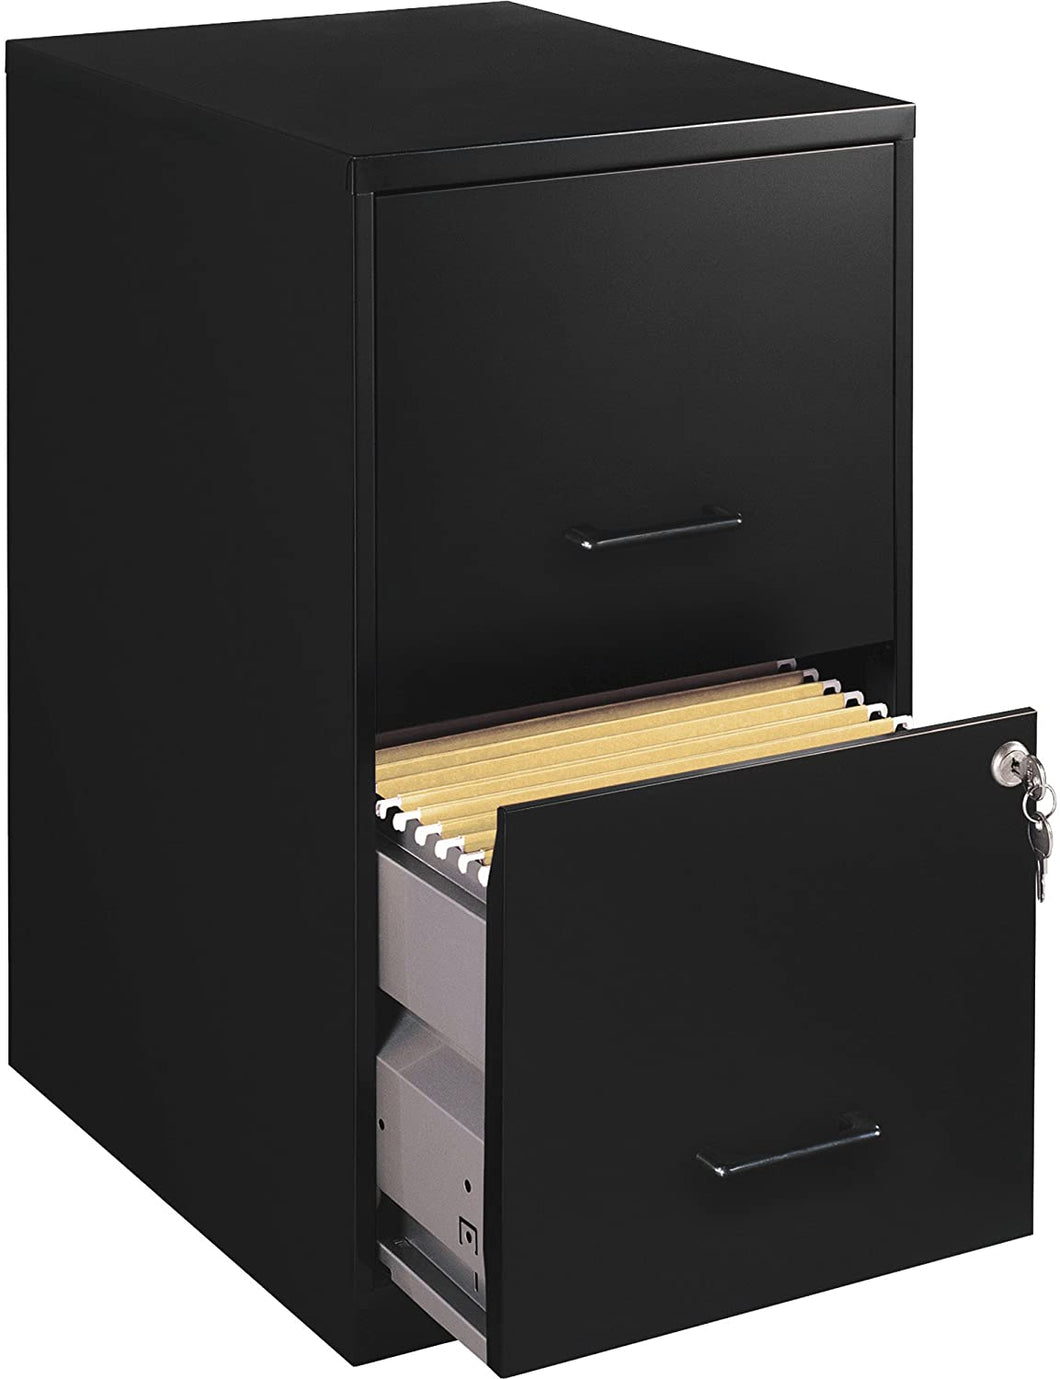 Lorell 14340 18 Deep 2-Drawer File Cabinet